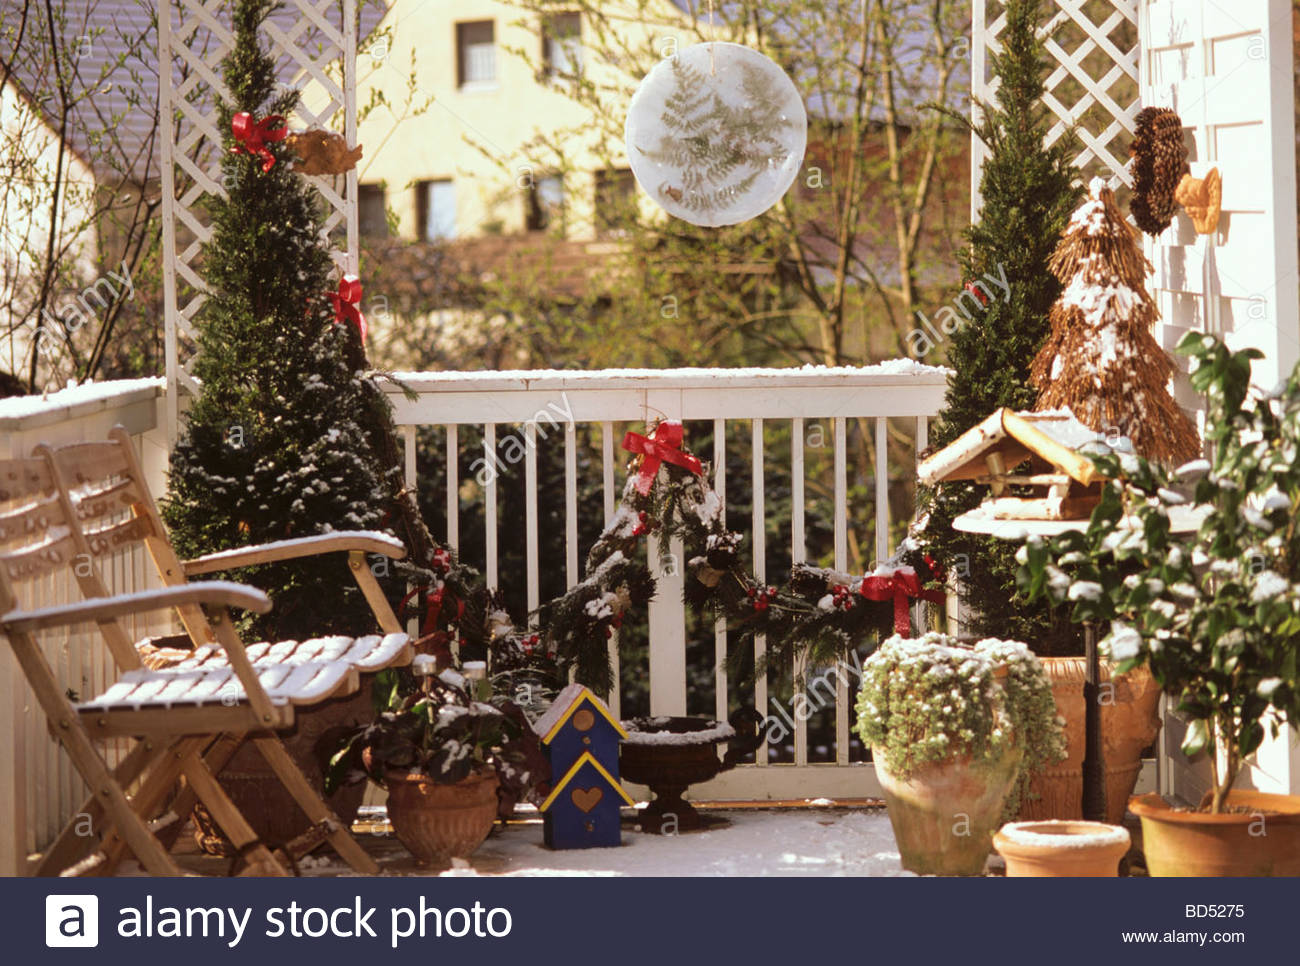 balcony decorated christmas stockfotos balcony decorated christmas bilder alamy. Black Bedroom Furniture Sets. Home Design Ideas